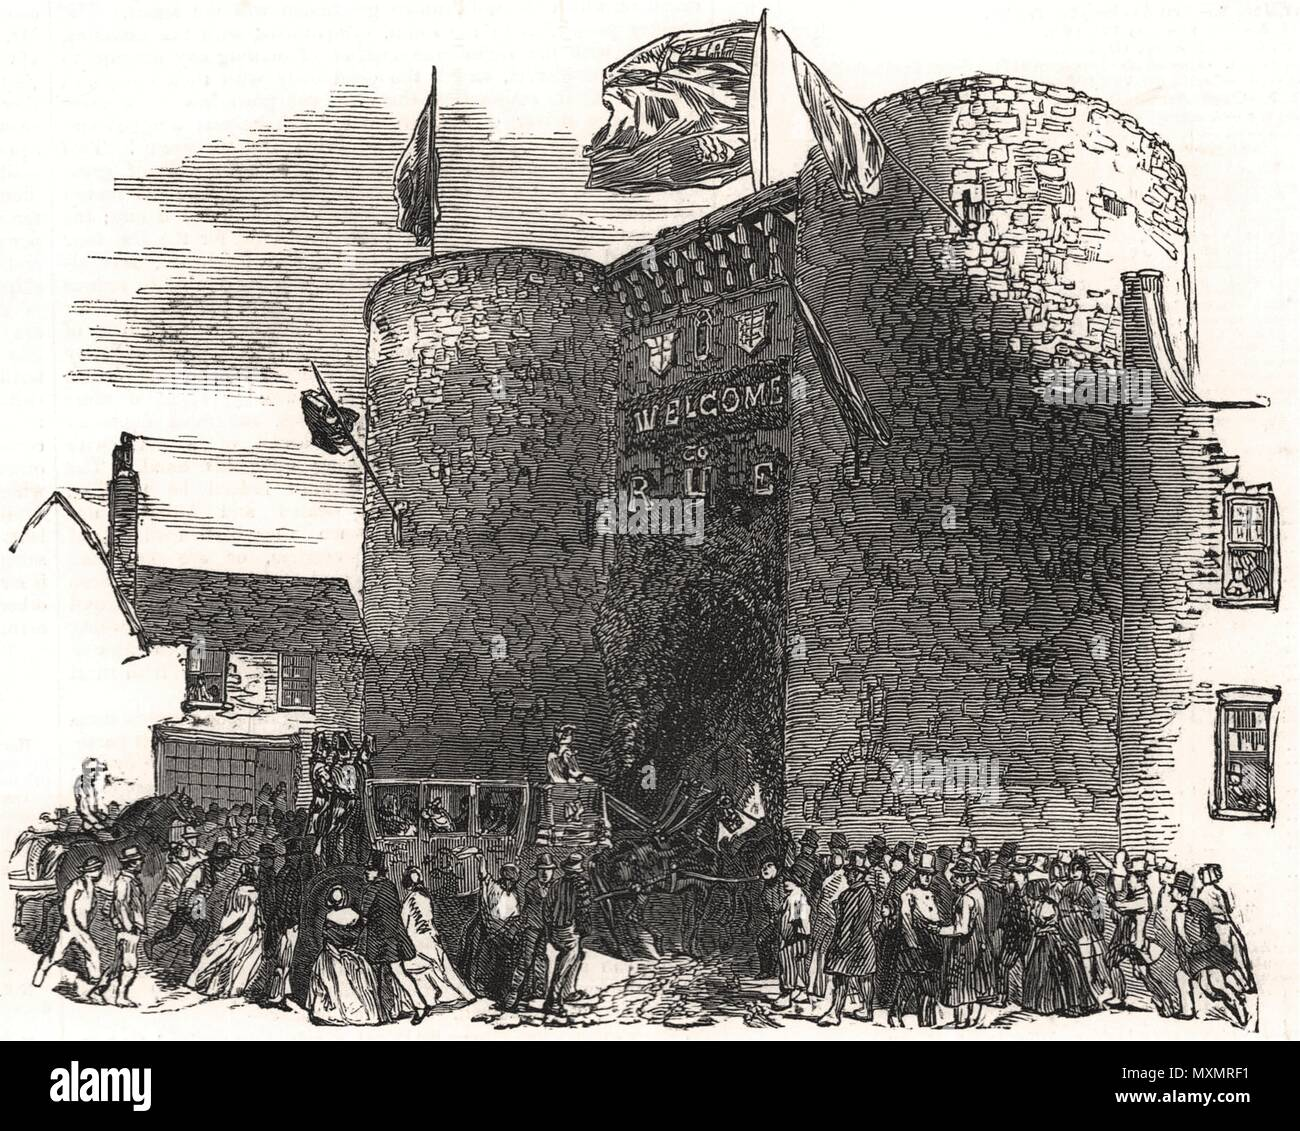 Lord Mayor of London procession at the old gate, Rye. Sussex 1850. The Illustrated London News - Stock Image